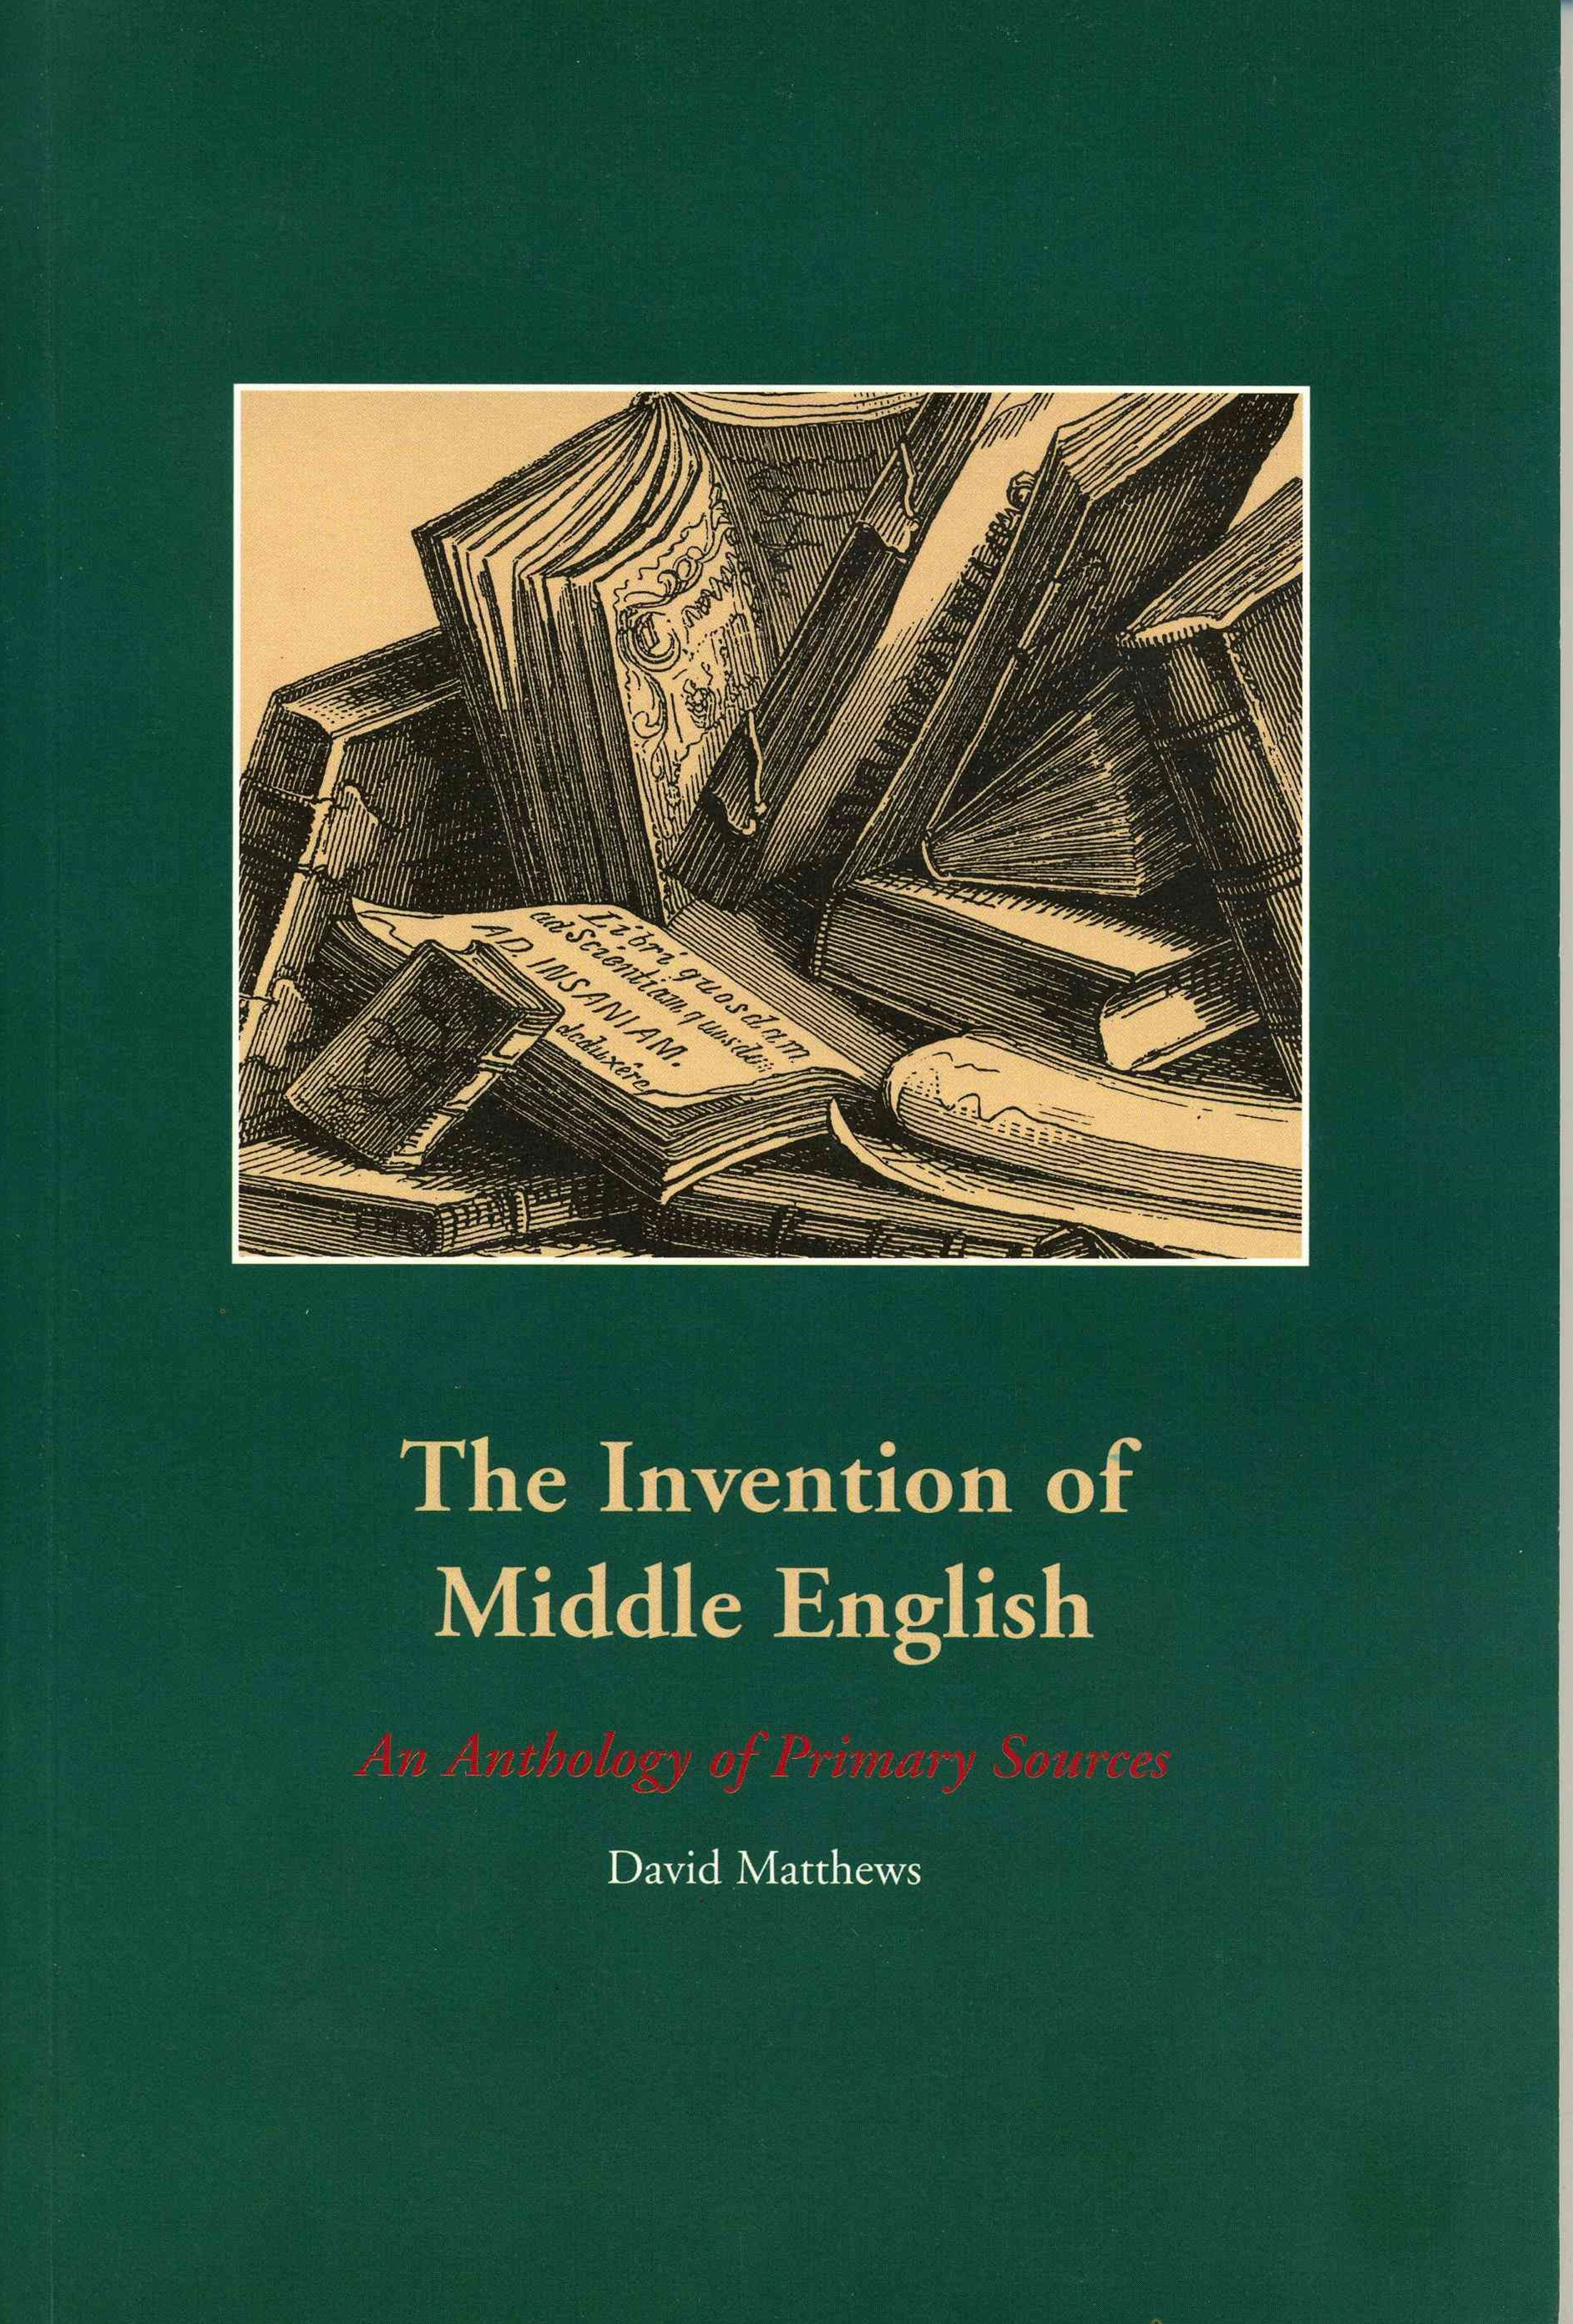 Invention of Middle English